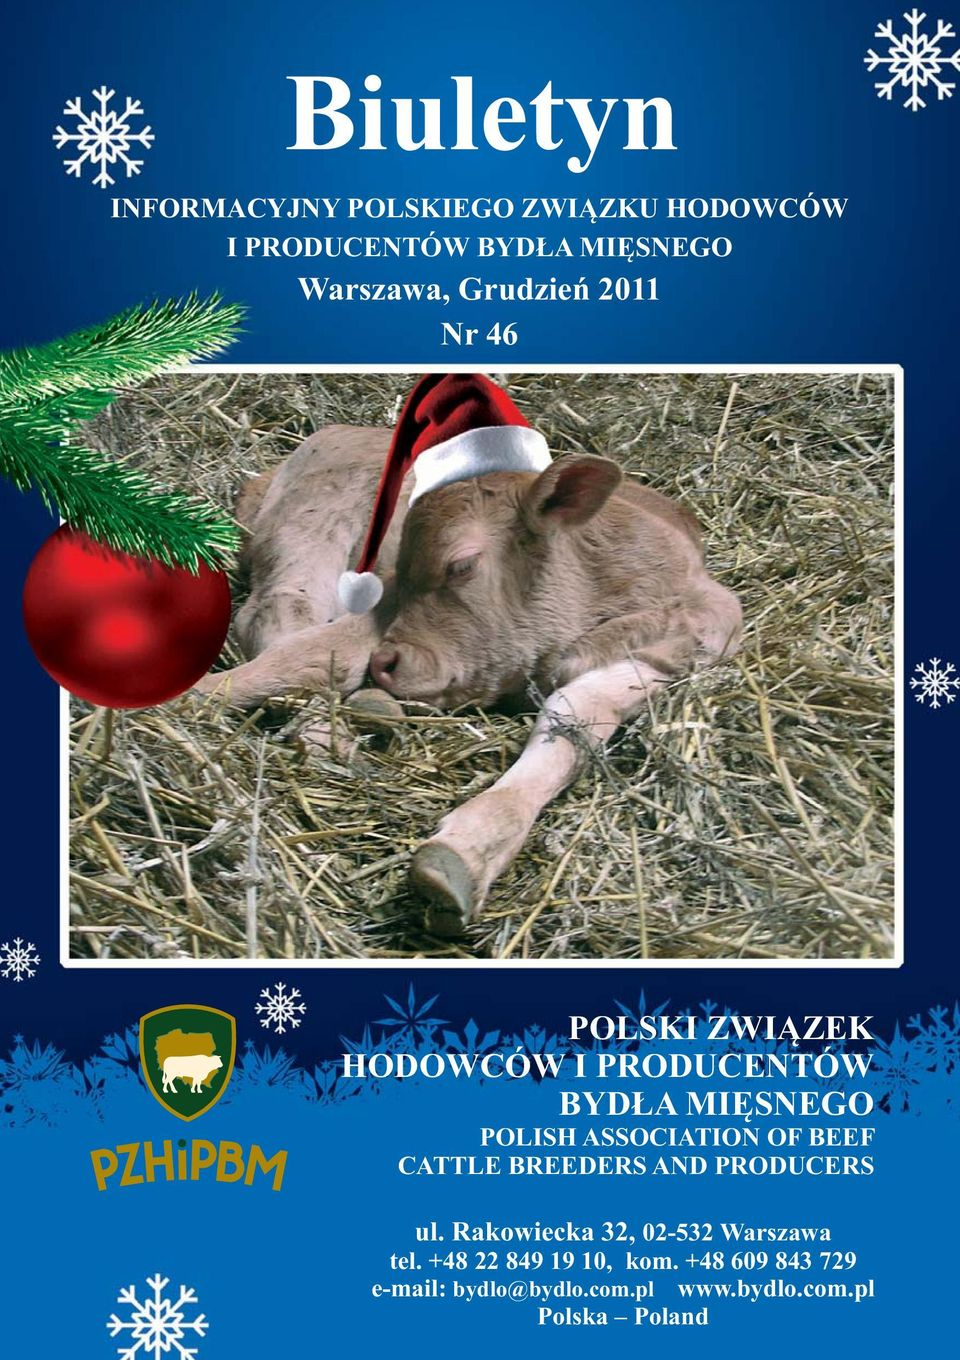 ASSOCIATION OF BEEF CATTLE BREEDERS AND PRODUCERS ul. Rakowiecka 32, 02-532 Warszawa tel.